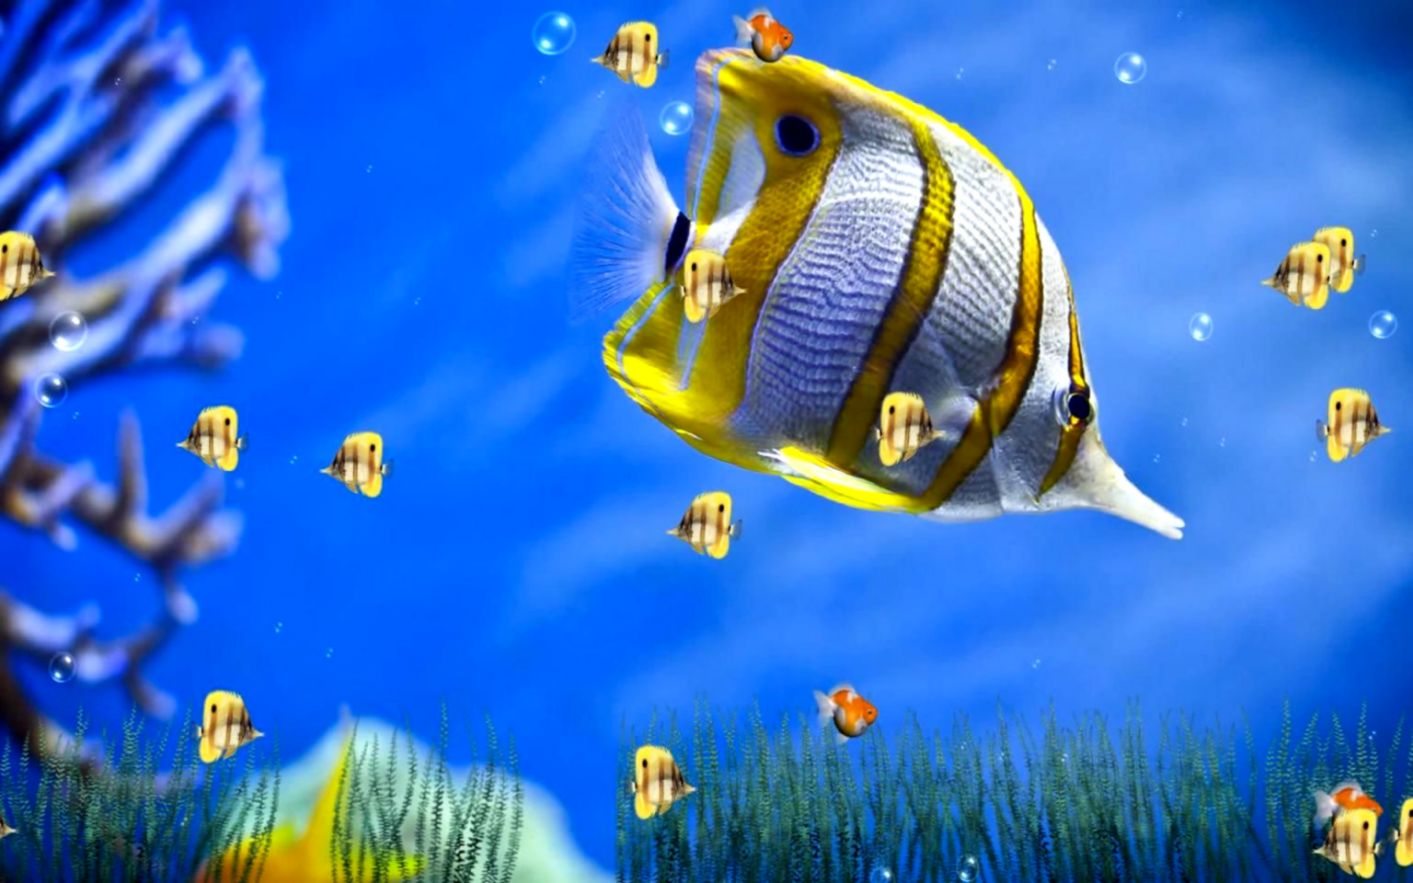 Perfect Decoration Moving Fish Wallpaper Backgrounds Free No